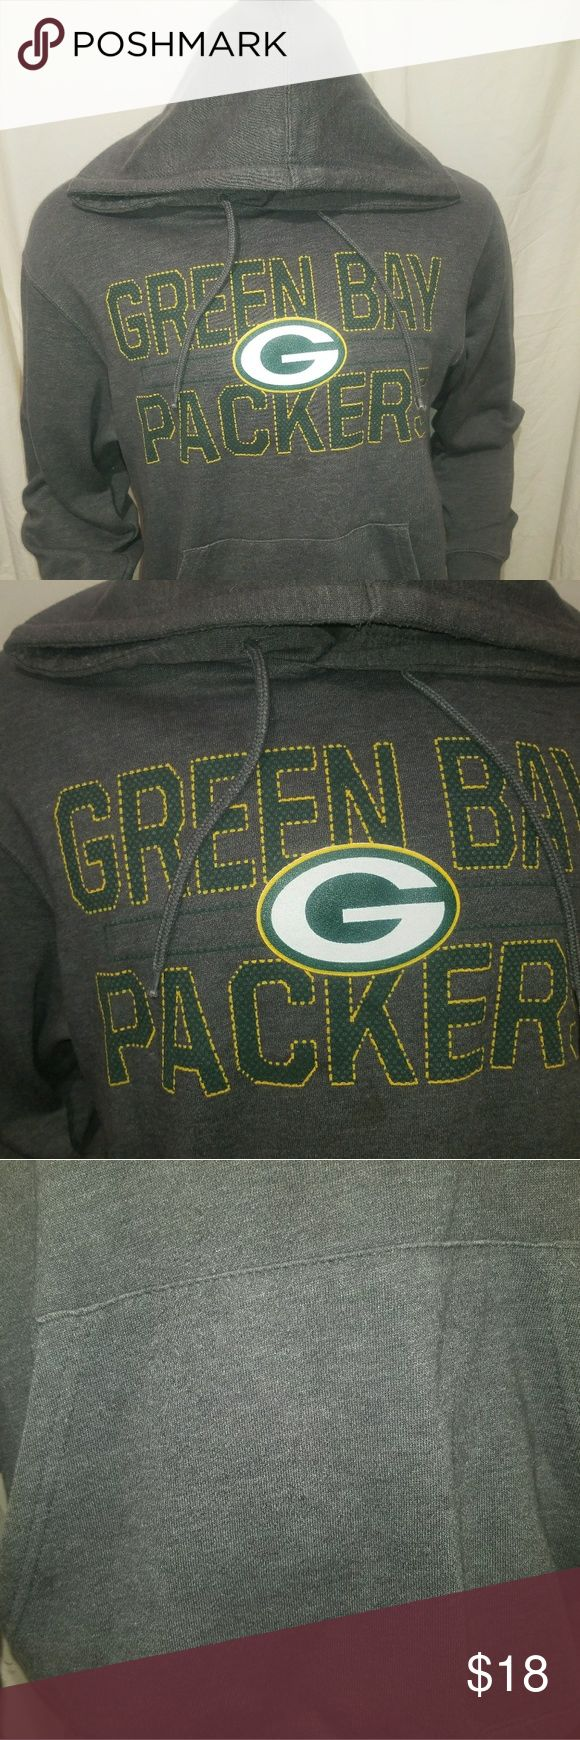 MAJESTIC Green Bay Packers LRG Hoodie Up for sale is a Majestic Large Green Bay Packers Hoodie. It's in great condition * except the size tag was cut off. Otherwise no flaws. Majestic Shirts Sweatshirts & Hoodies